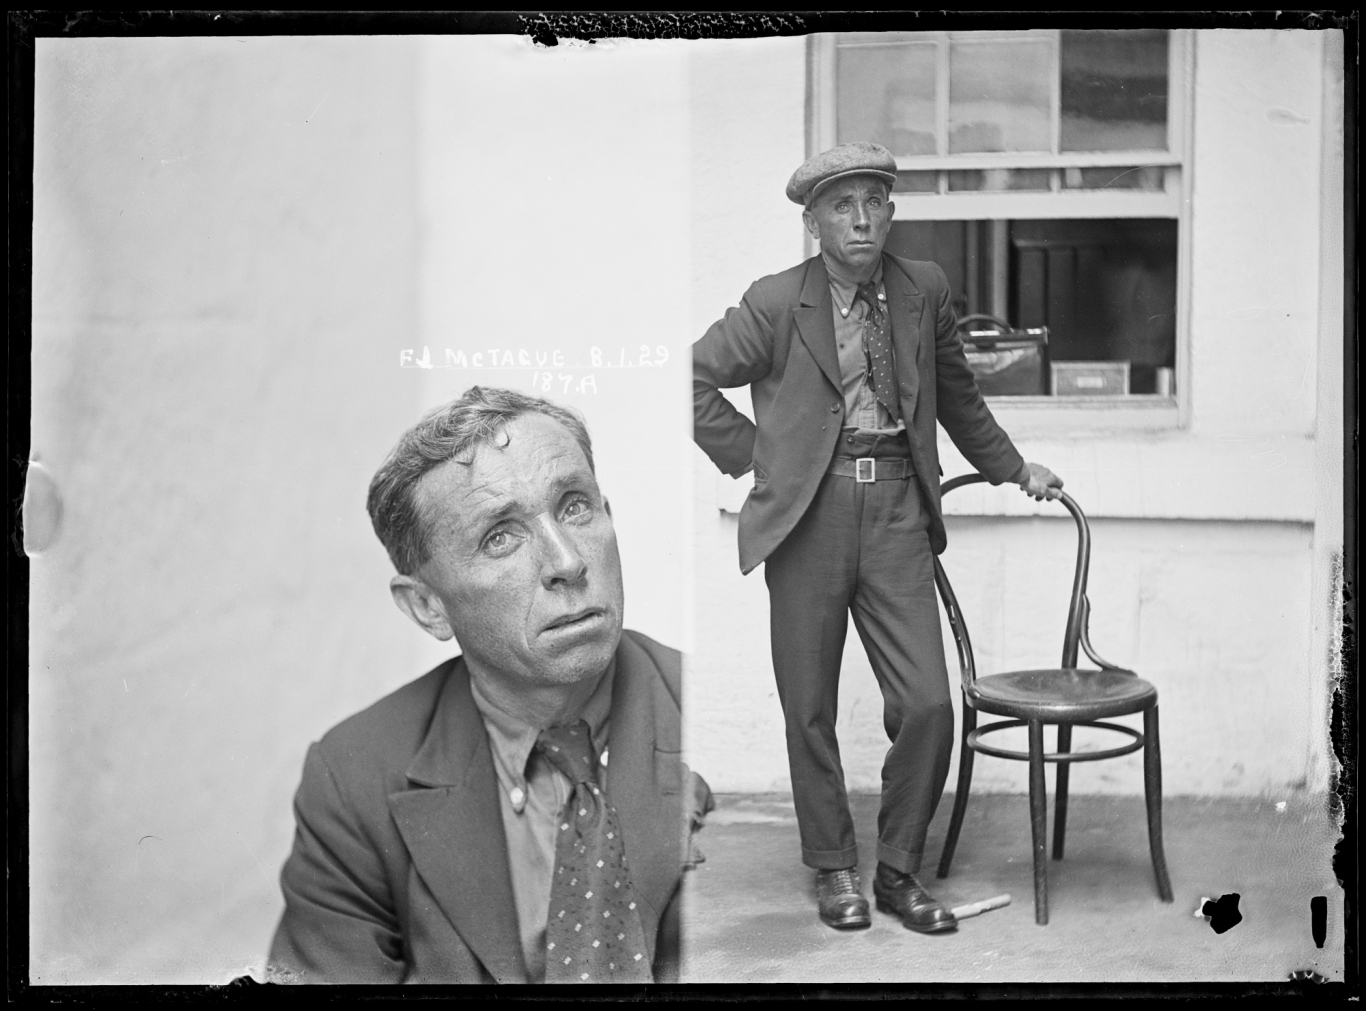 Dual mugshot in black and white; man seated and then man standing, with hat on. Photographer's bag sitting on window sill behind man.